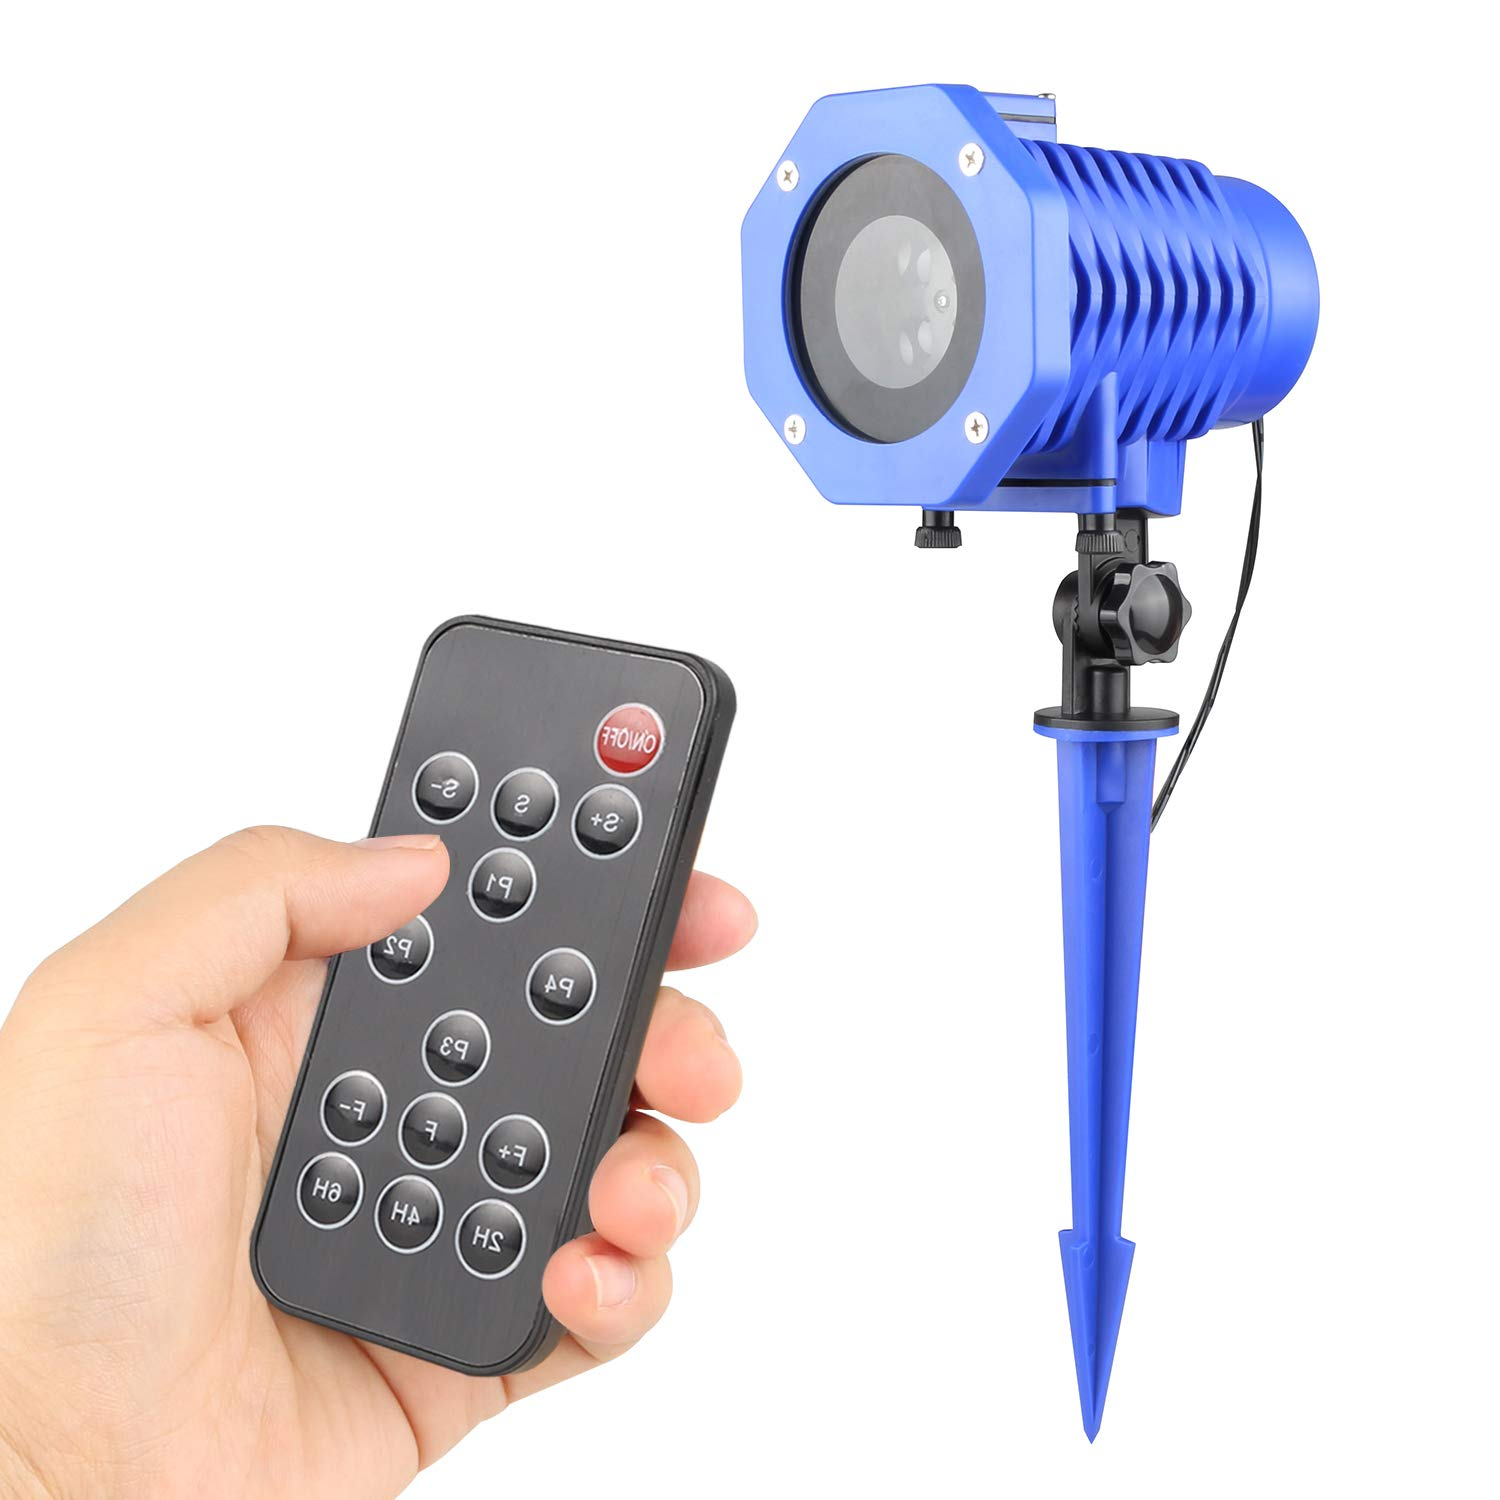 Led Christmas Projector Light Or Laser Light with Automatic Timers and RF Wireless Remote (Blue)